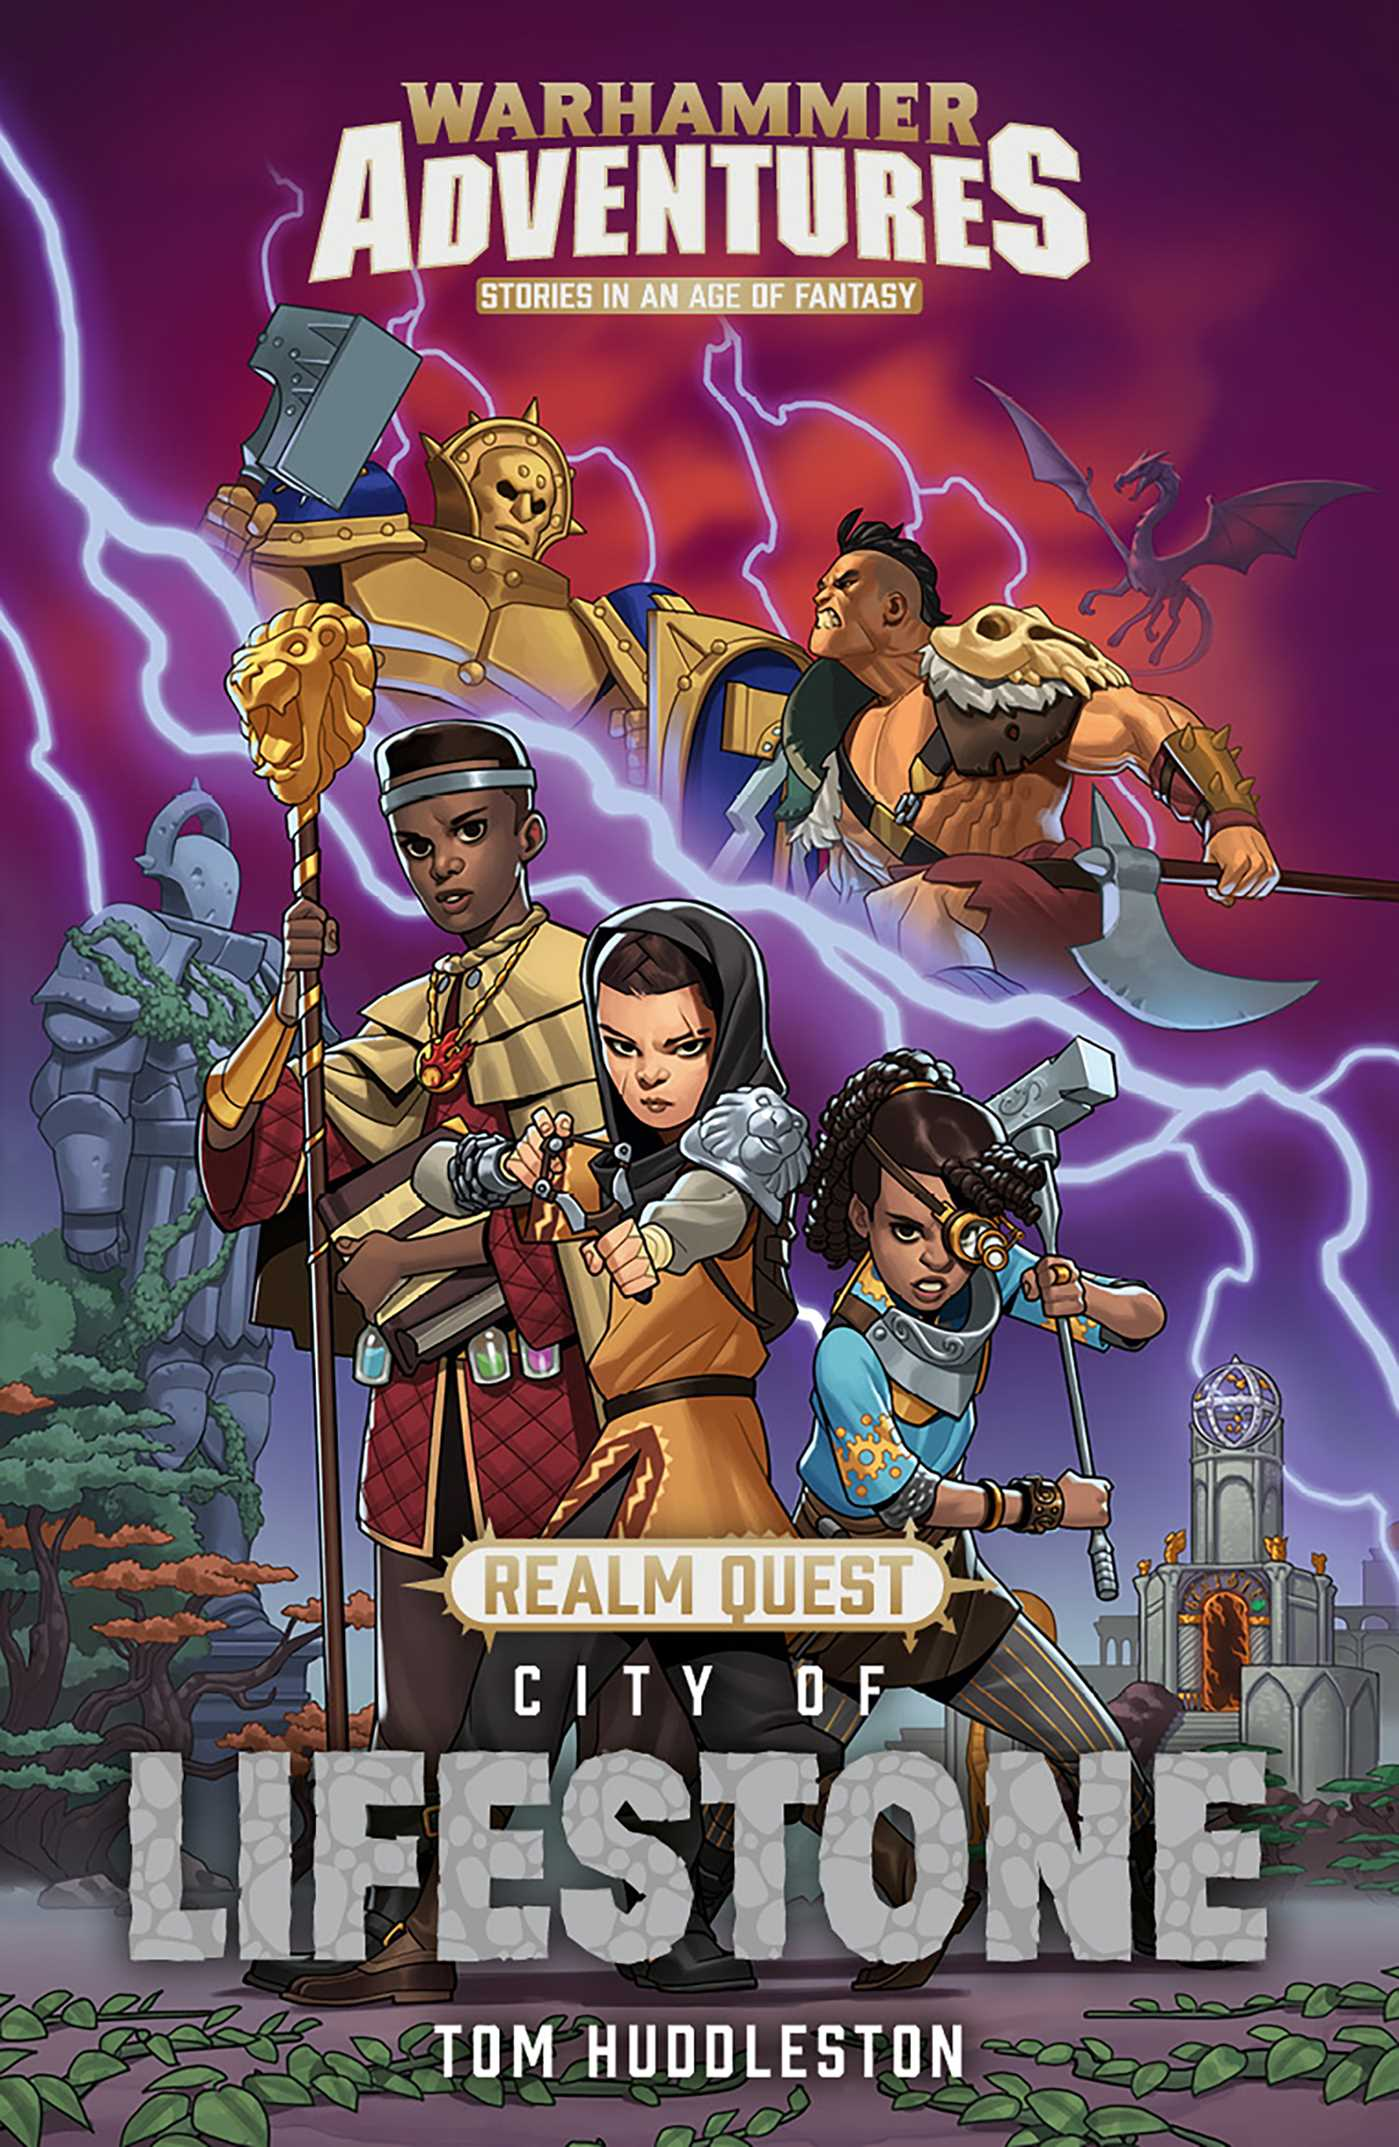 Realm quest city of the lifestone 9781784967826 hr